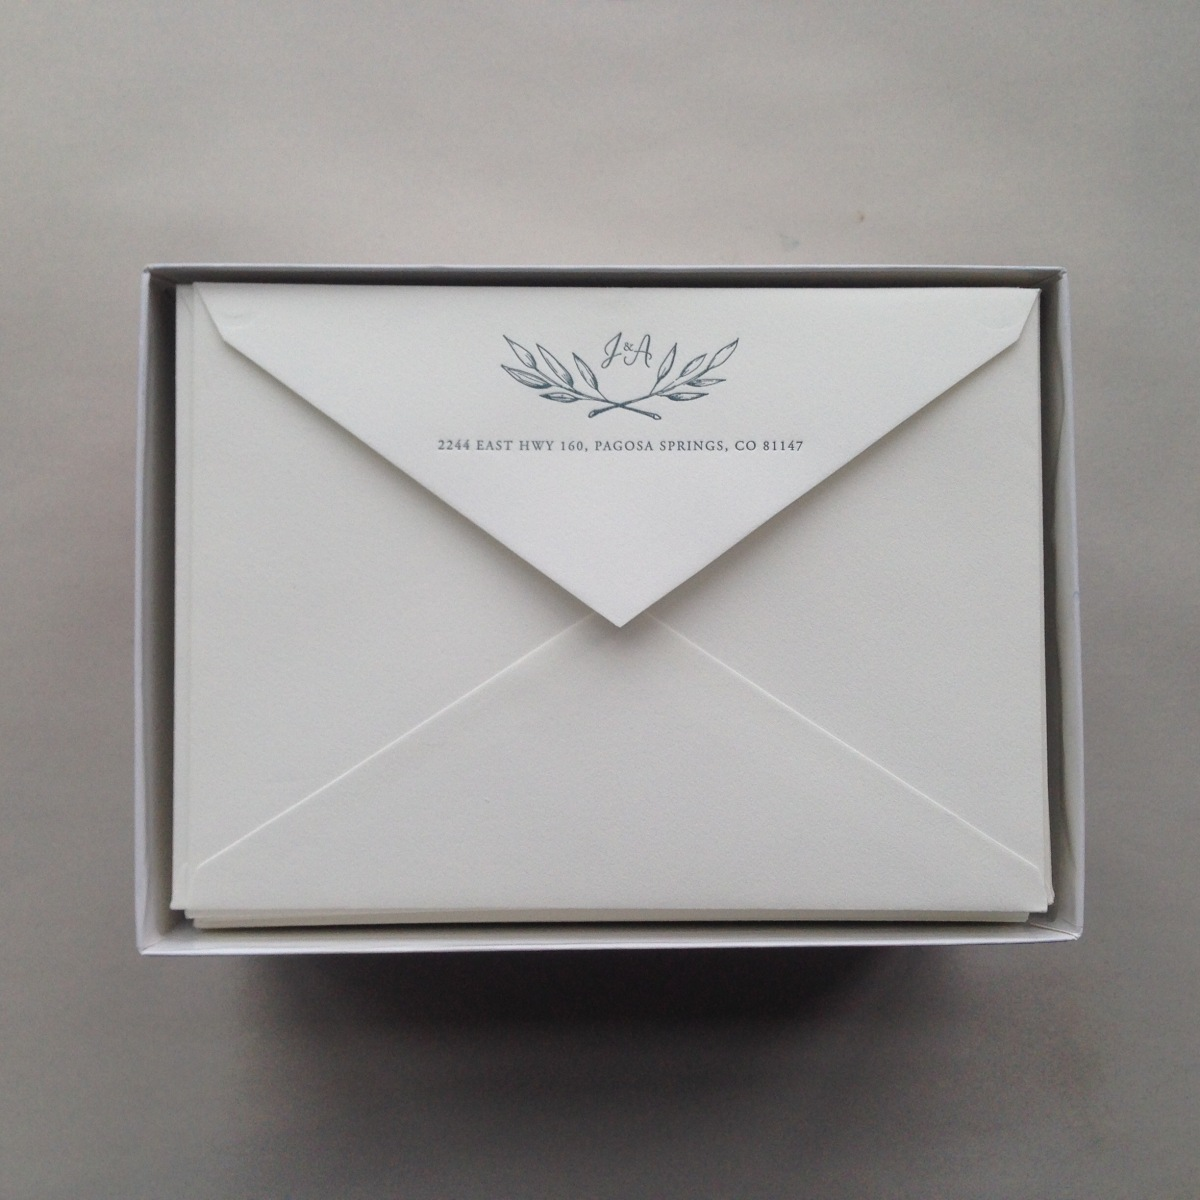 - AMY ROCHELLE PRESS - Letterpress wedding envelopes with olive wreathe and monogram on Crane's Lettra. Part of a custom wedding invitation suite.